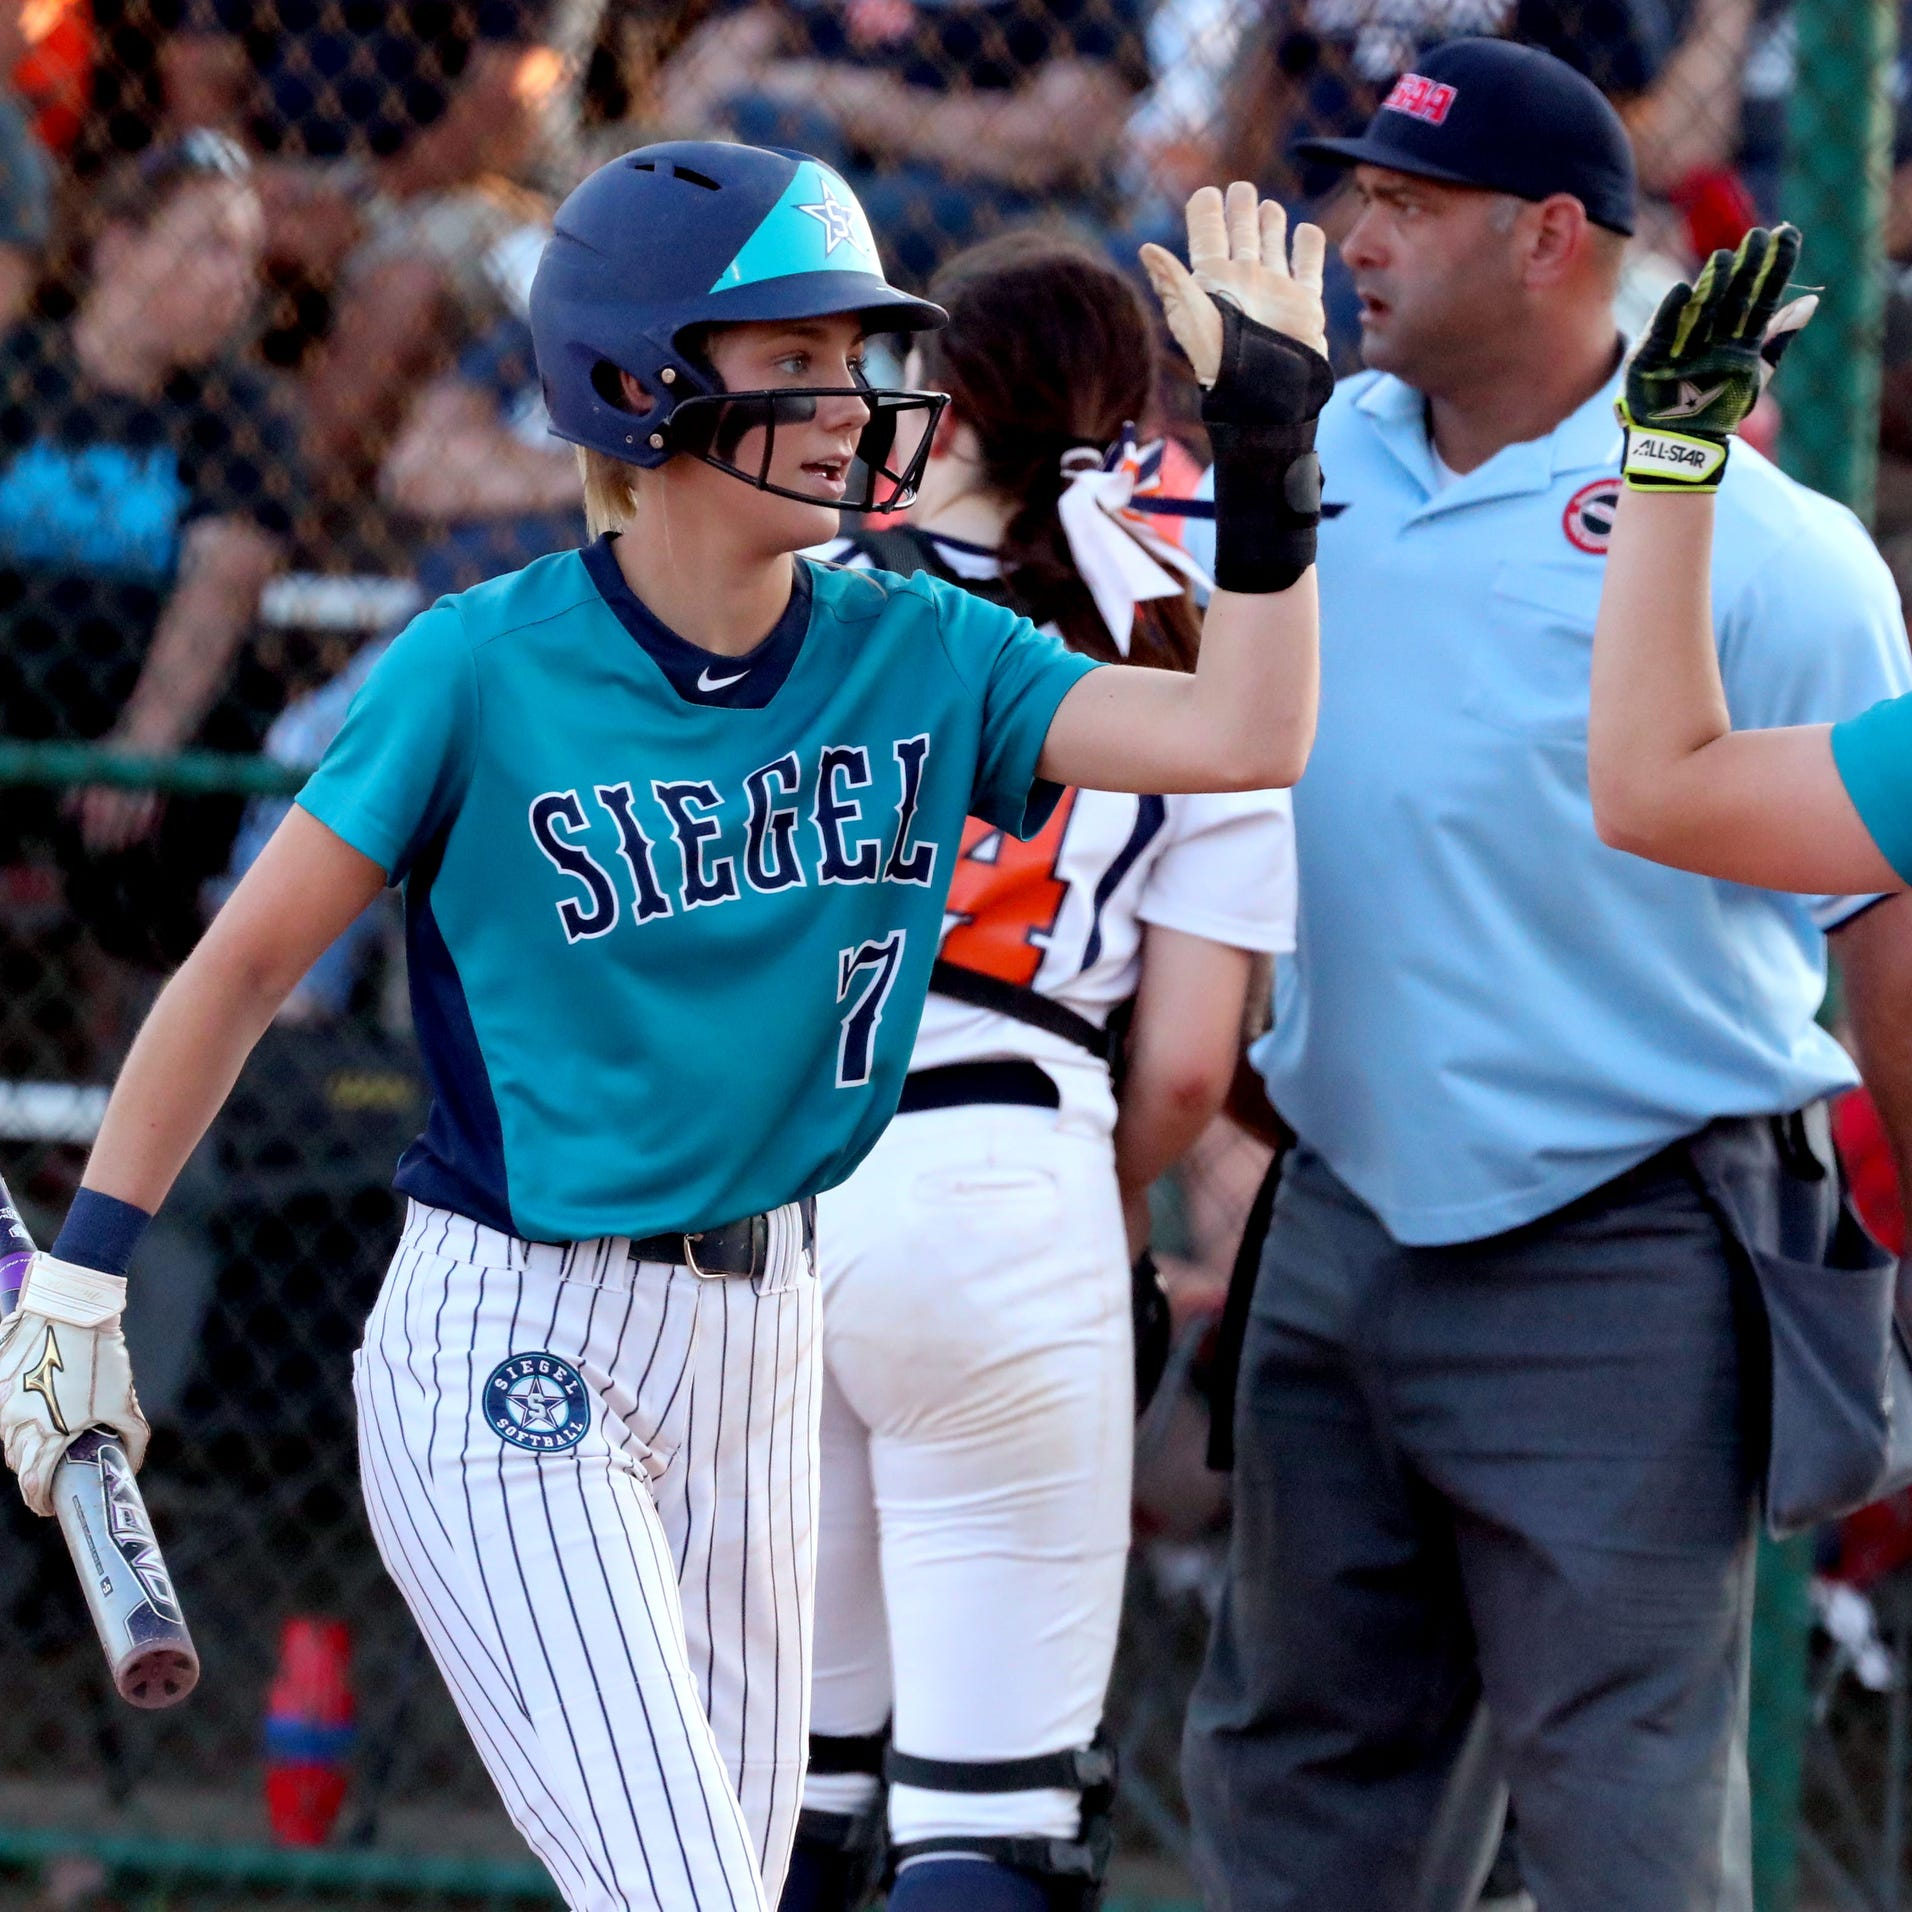 TSSAA Spring Fling 2019: Siegel softball takes title game loss frustration out on Dickson County